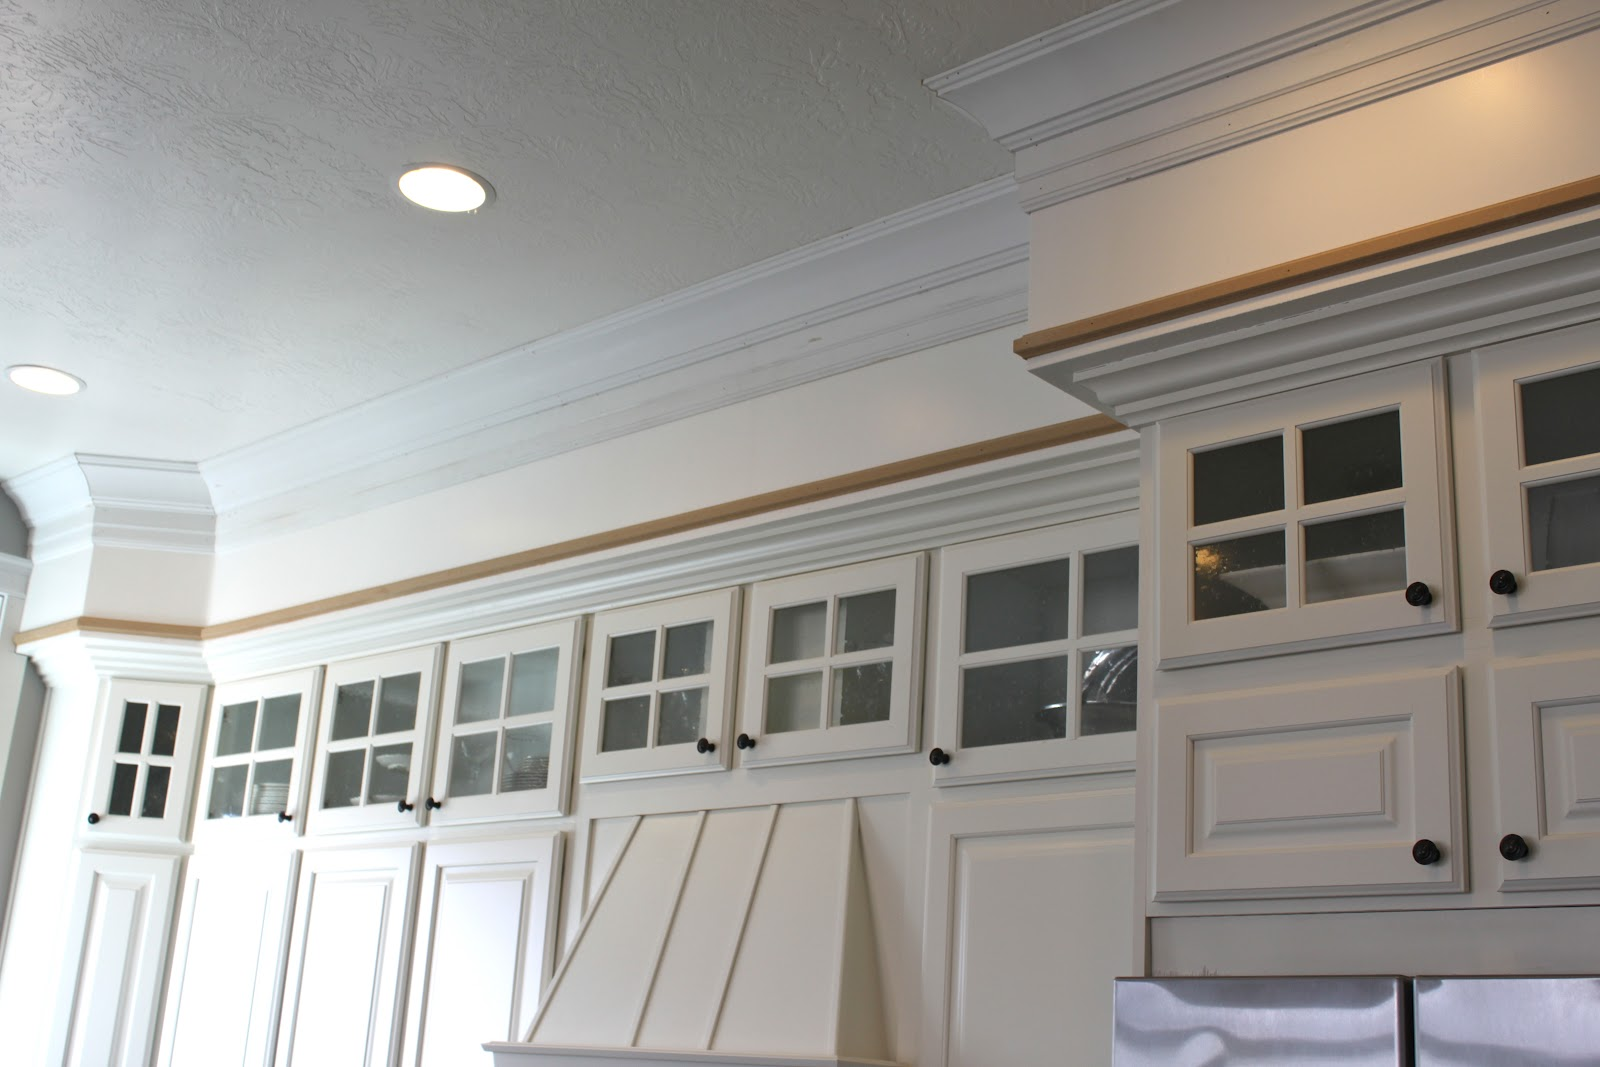 Low ceilings soffits and opening up your kitchen designeric for Bulkhead kitchen designs